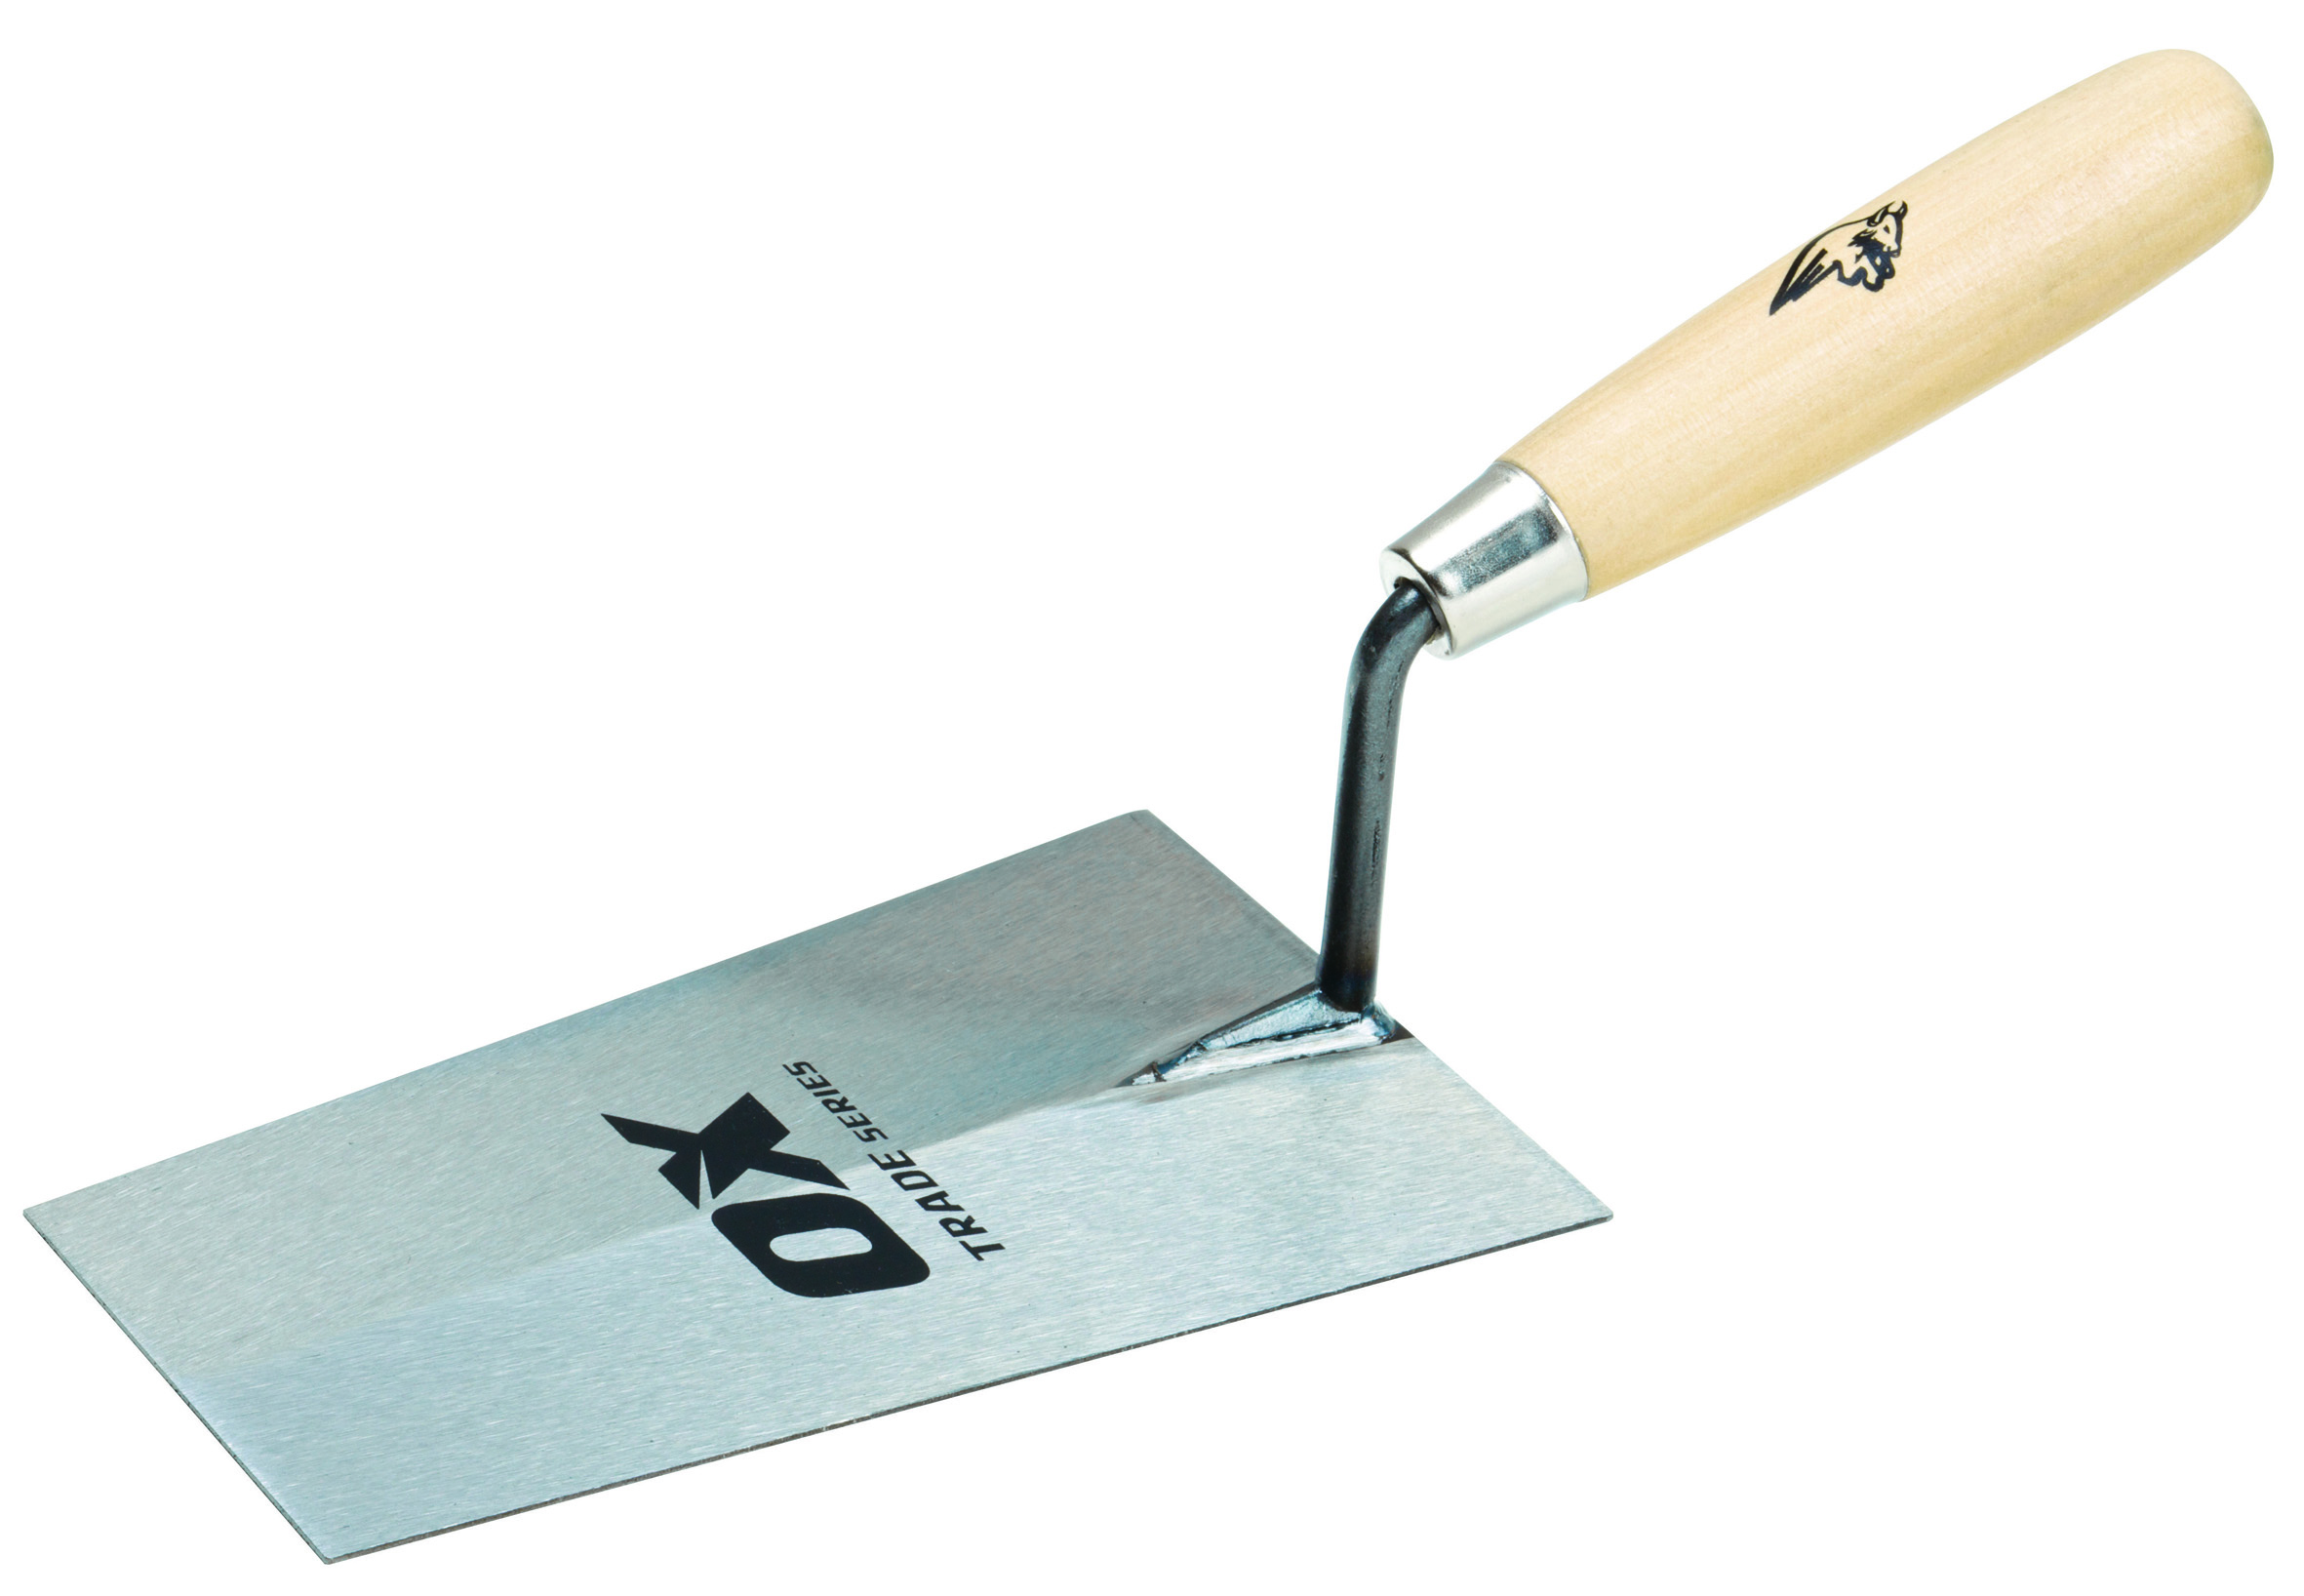 OX TRADE BUCKET TROWEL - WOODEN HANDLE / 7